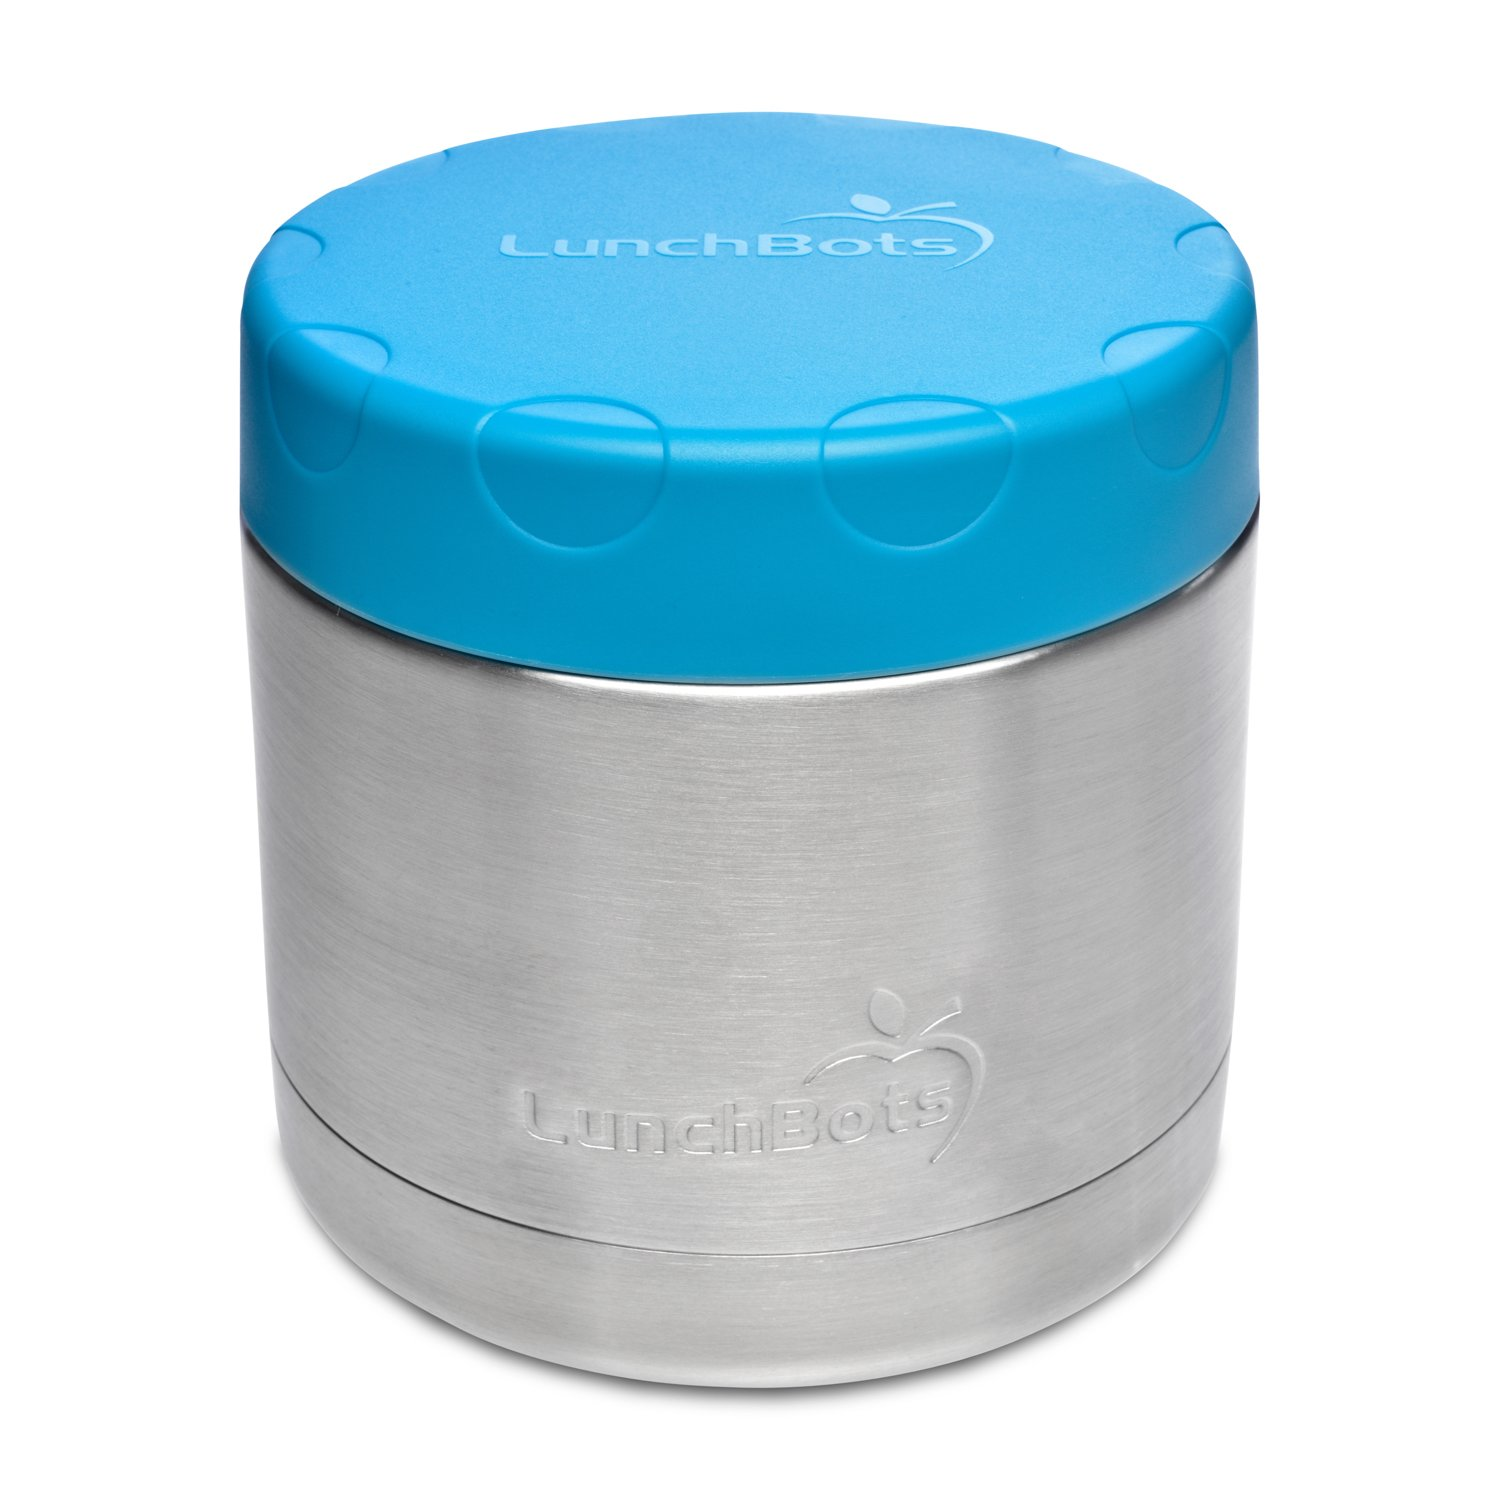 LunchBots 16oz Thermal Stainless Steel Wide Mouth Thermos - Insulated Container with Lid Keeps Food Hot or Cold for Hours - Leak-Proof Portable Thermal Food Jar is Ideal for Soup - 16 ounce - Aqua by LunchBots